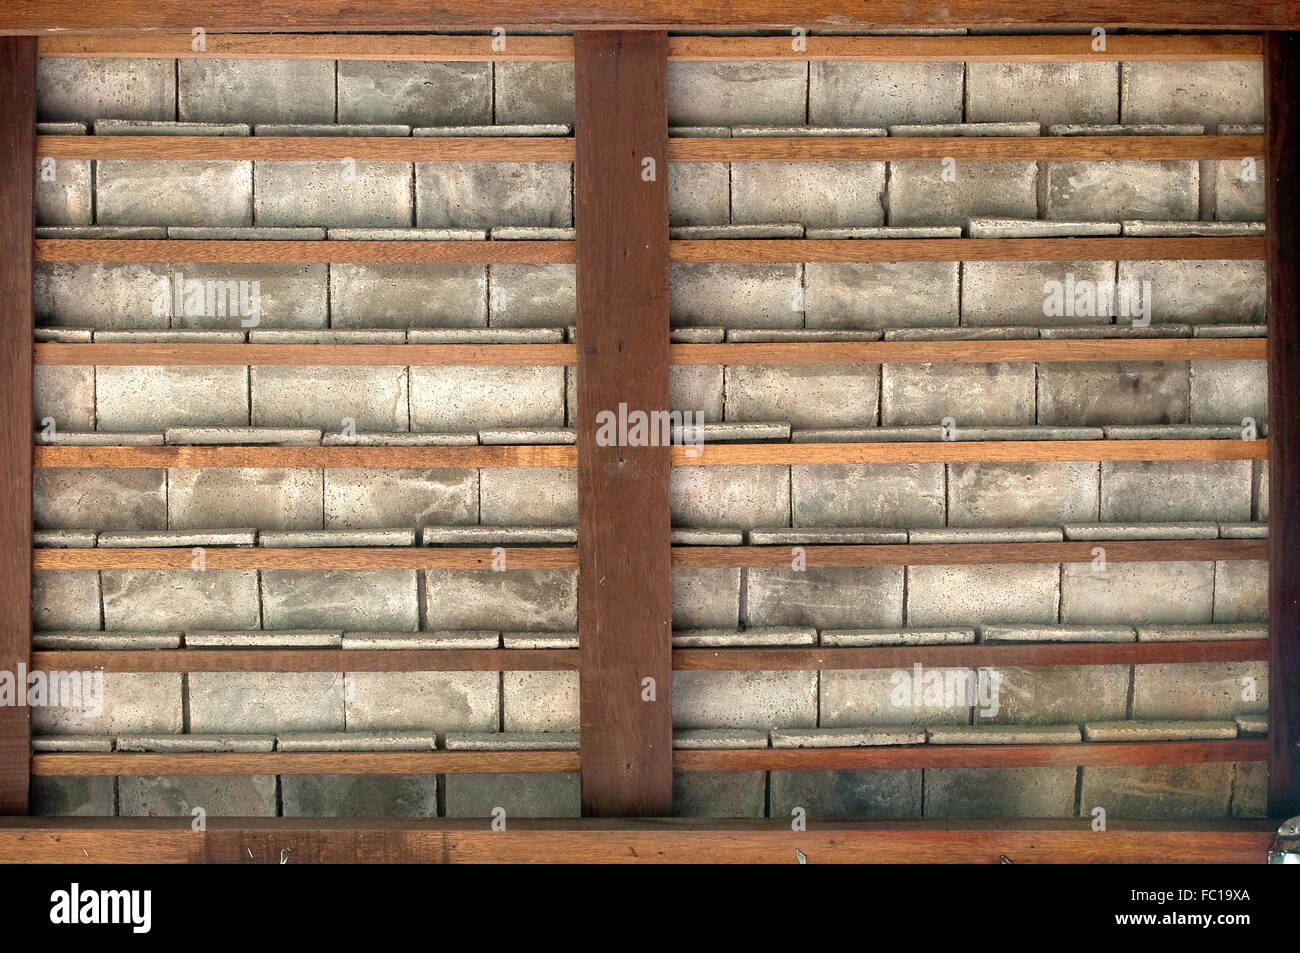 Wood frame and cement tile background pattern - Stock Image